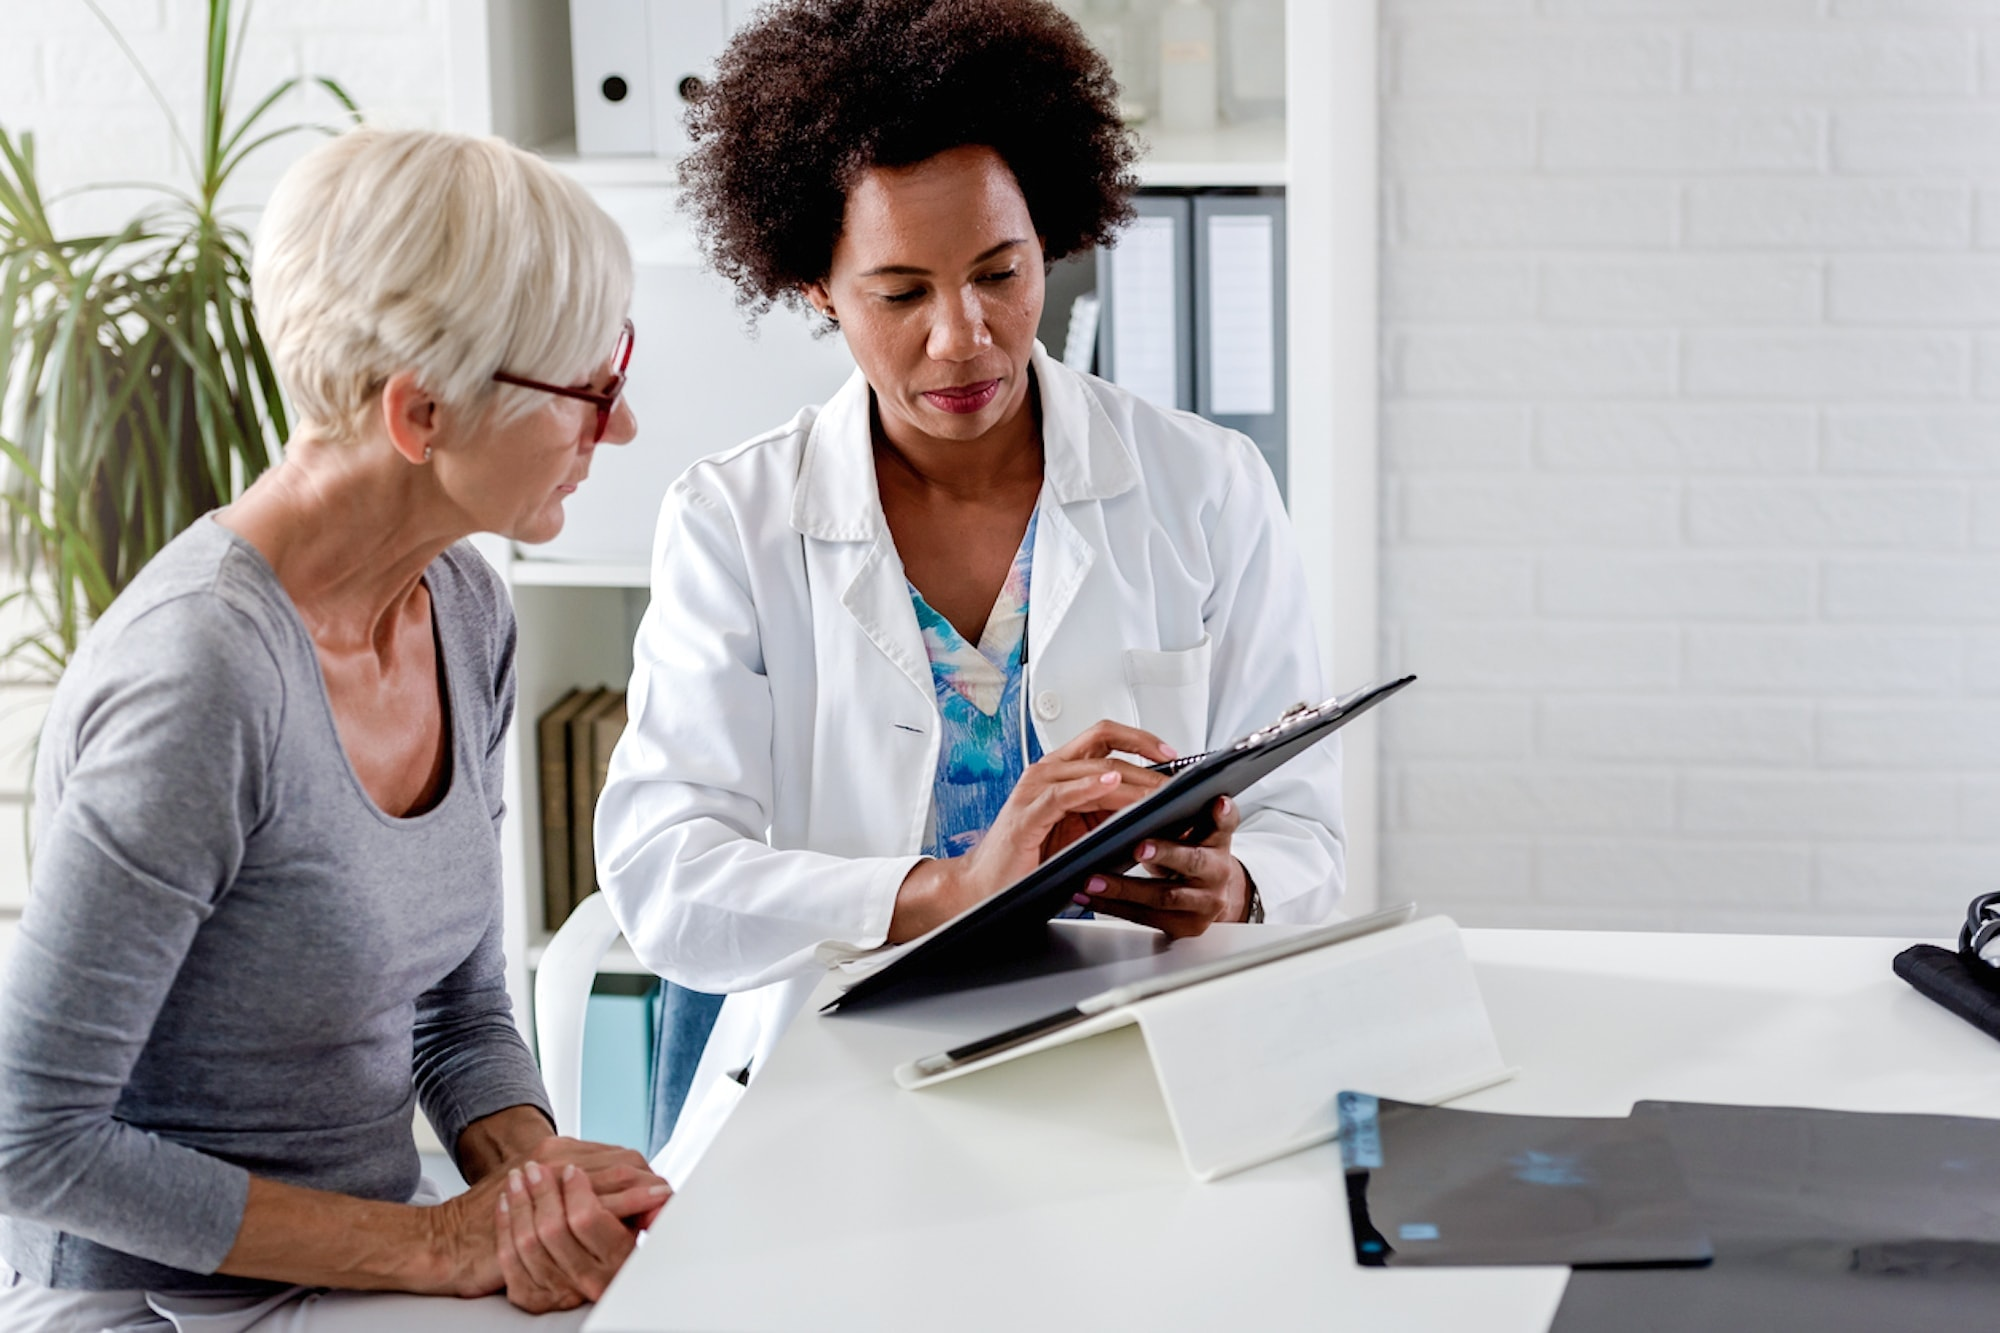 A healthcare professional discusses plans and options to a patient